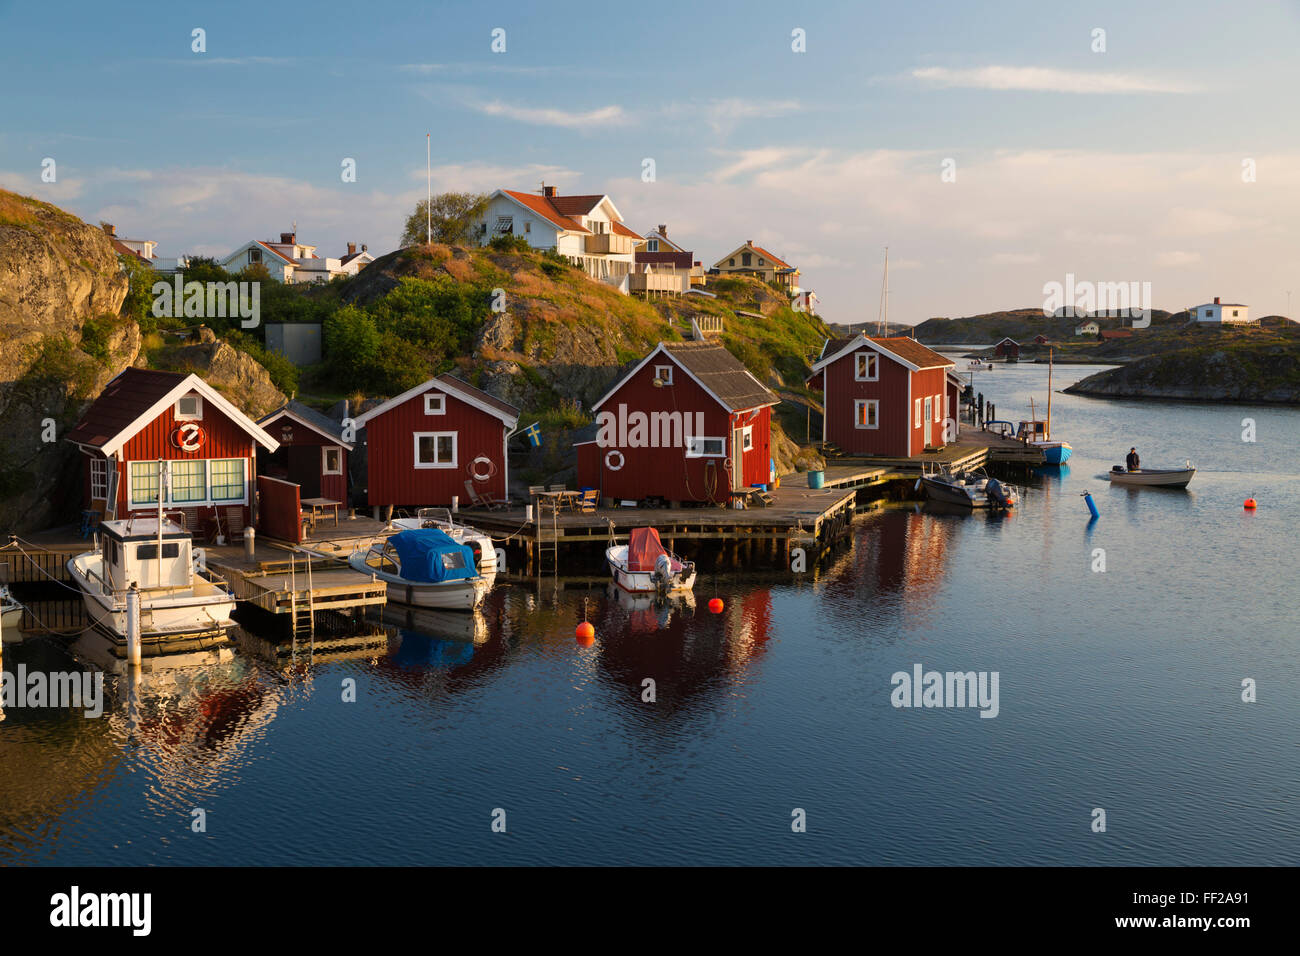 Red fishermen's huts by harbour and archipeRMago, Stocken, Orust, BohusRMan Coast, Southwest Sweden, Sweden, - Stock Image